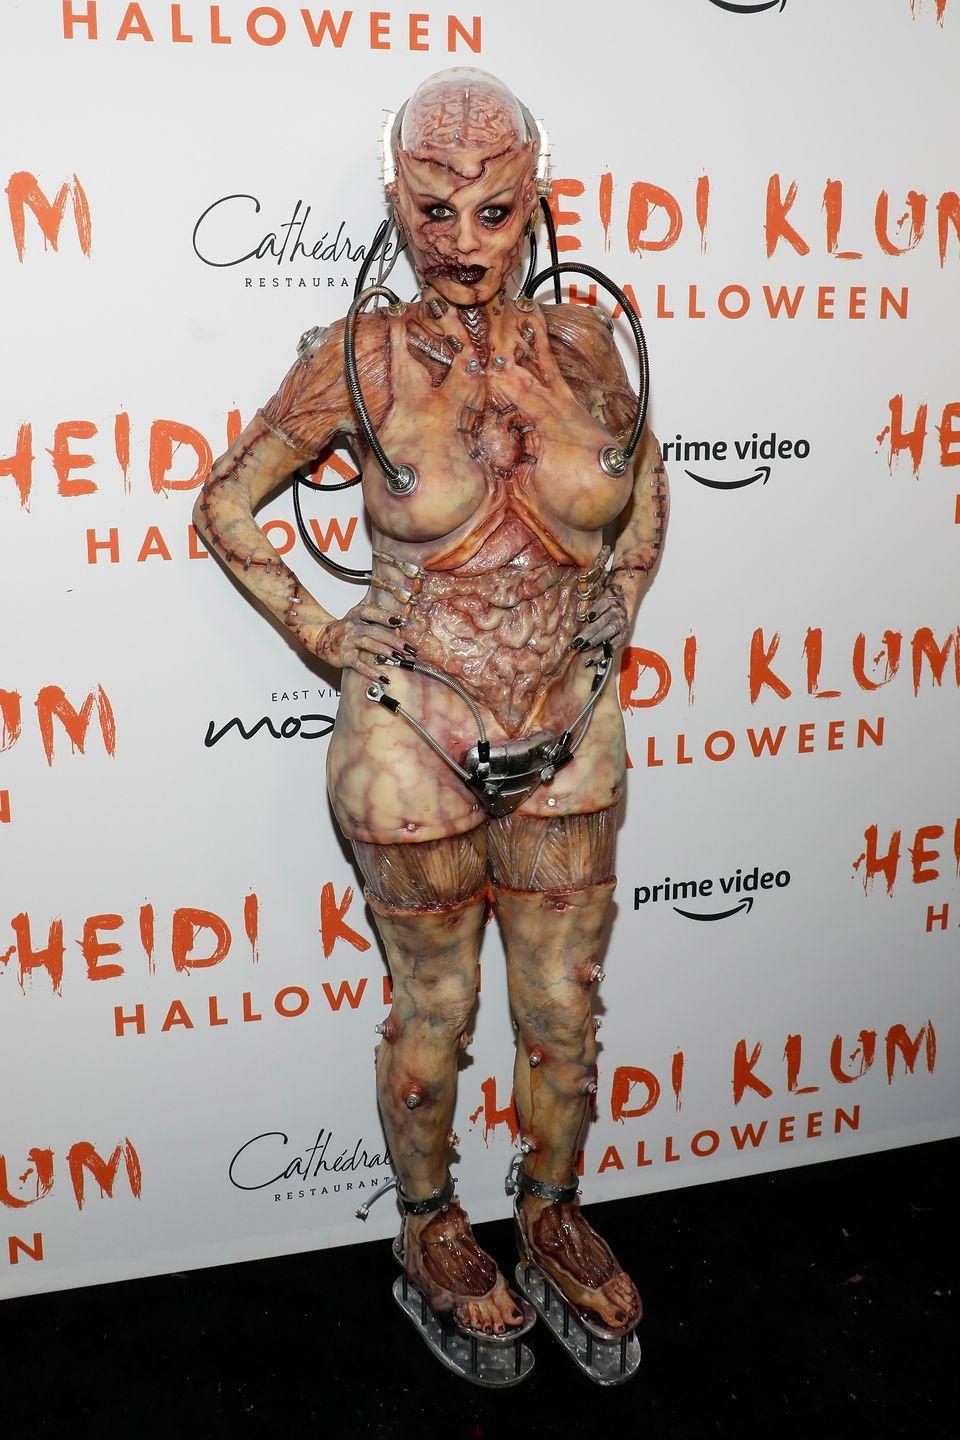 <p>The 46-year-old model stunned her guests dressed as a gruesome humanoid alien at her 20th Annual Halloween Bash in New York City. </p><p>The German star gave fans a sneak peek into her sitting in the make-up chair during being made up as the alien in front of a glass window in an Amazon store in the Big Apple prior to the event.</p><p>The costume featured prosthetics galore, fake blood, boob tubes and a strange metal thong-type contraption, naturally. </p>